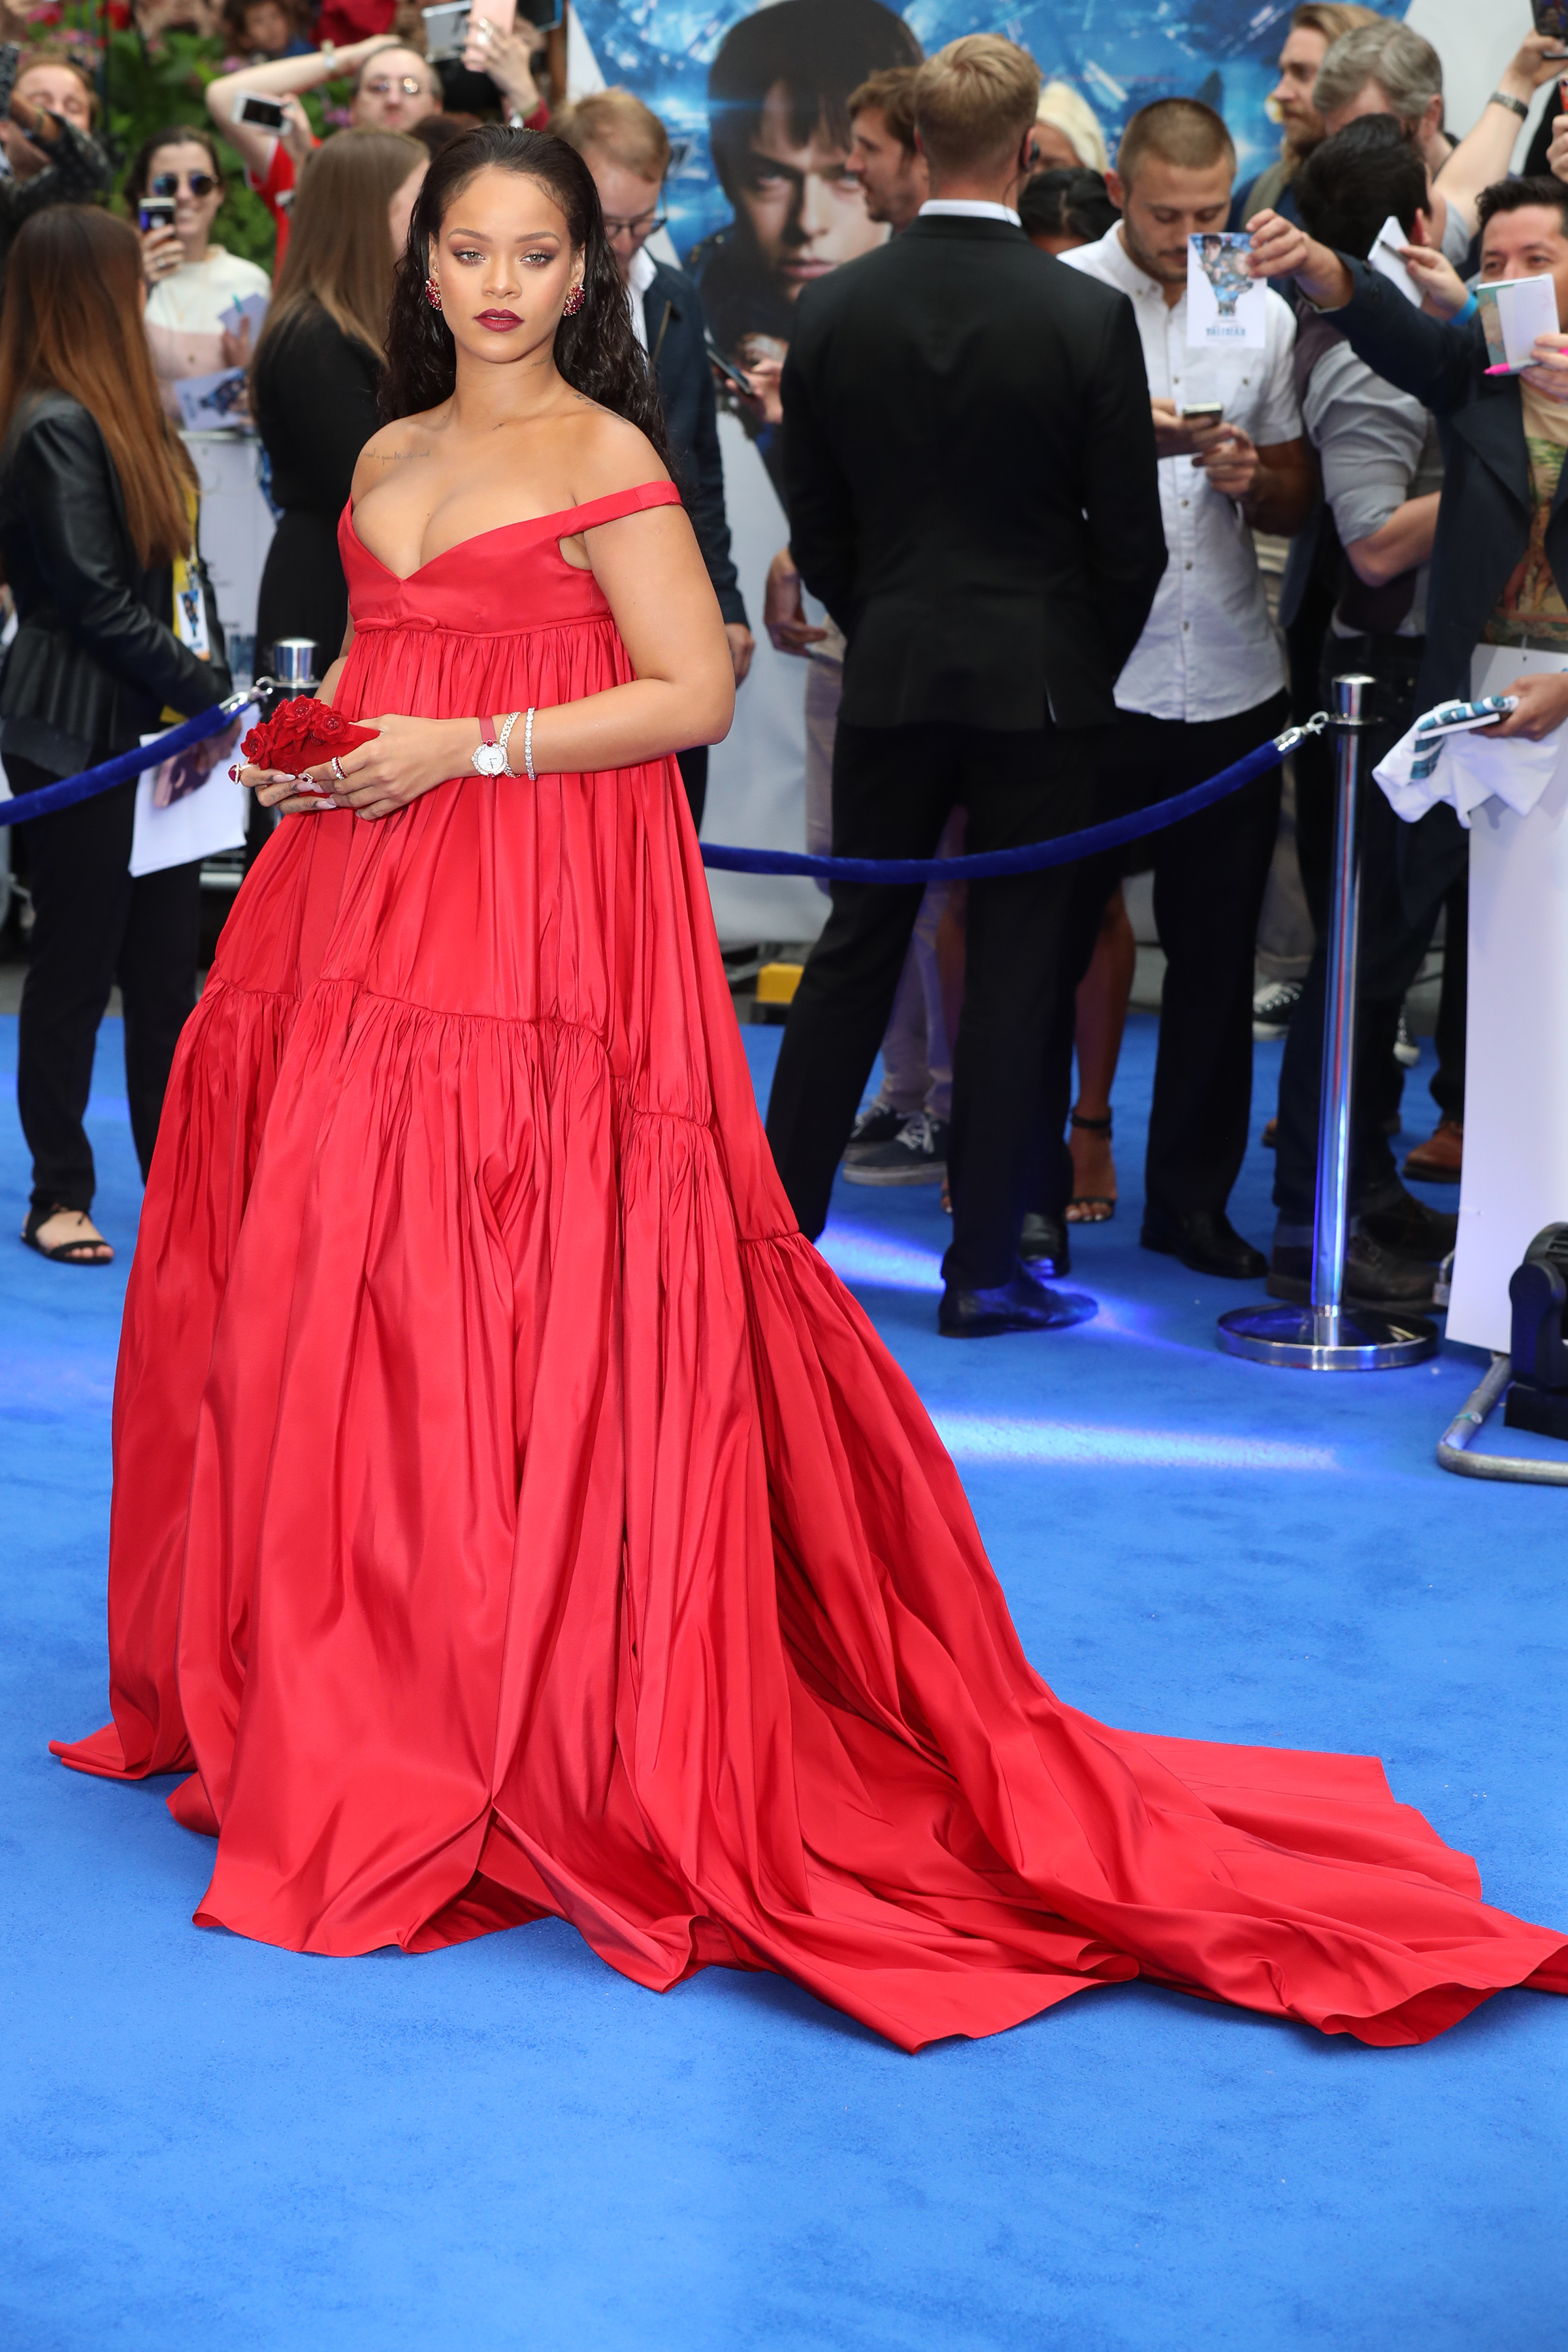 'Valerian And The City Of A Thousand Planets' European Premiere - Red Carpet Arrivals